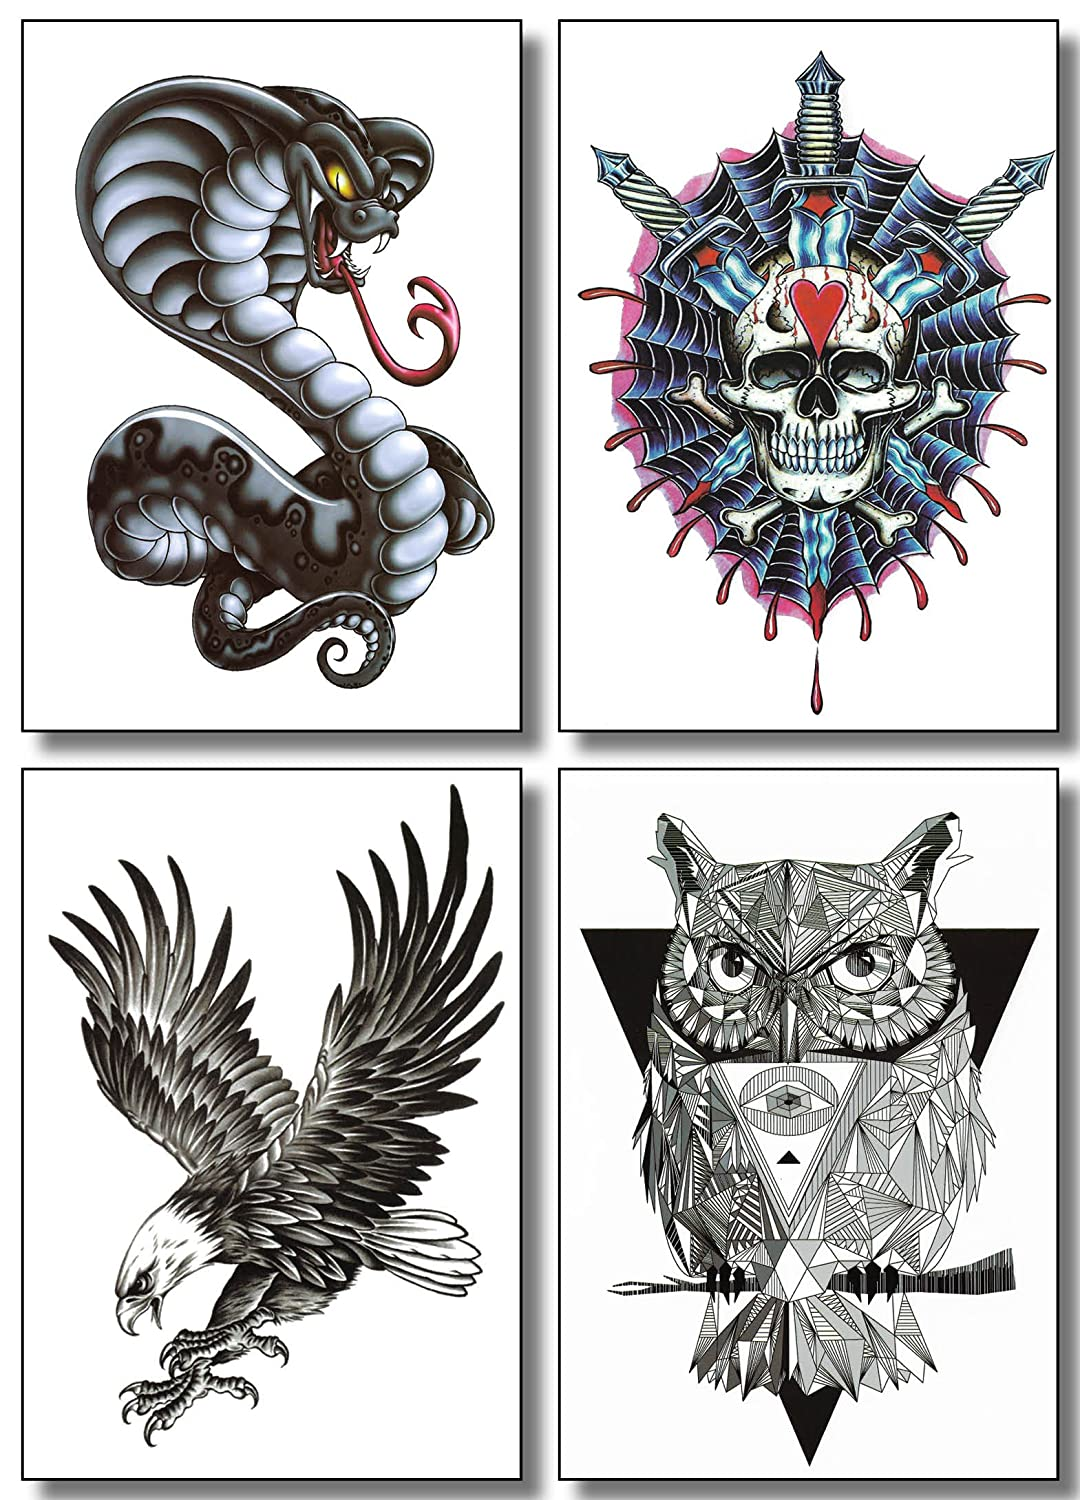 Amazon 8 sheets temporary tattoos for guys men boys teens amazon 8 sheets temporary tattoos for guys men boys teens fake large stickers for arms shoulders chest back legs eagle koi fish skull gun owl biocorpaavc